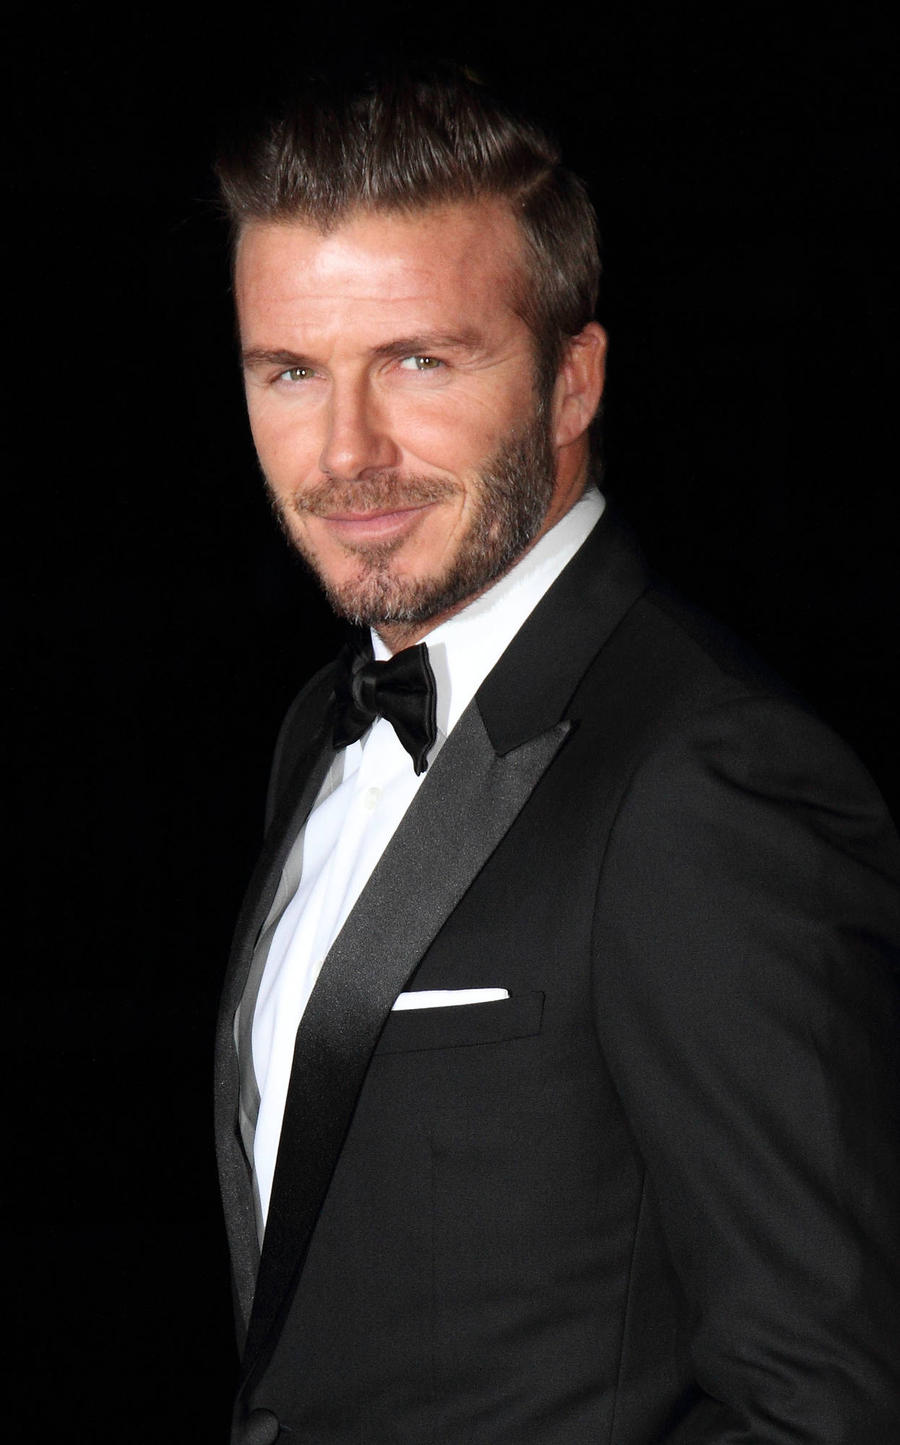 David Beckham's Act Of Kindness Inspires Campaign